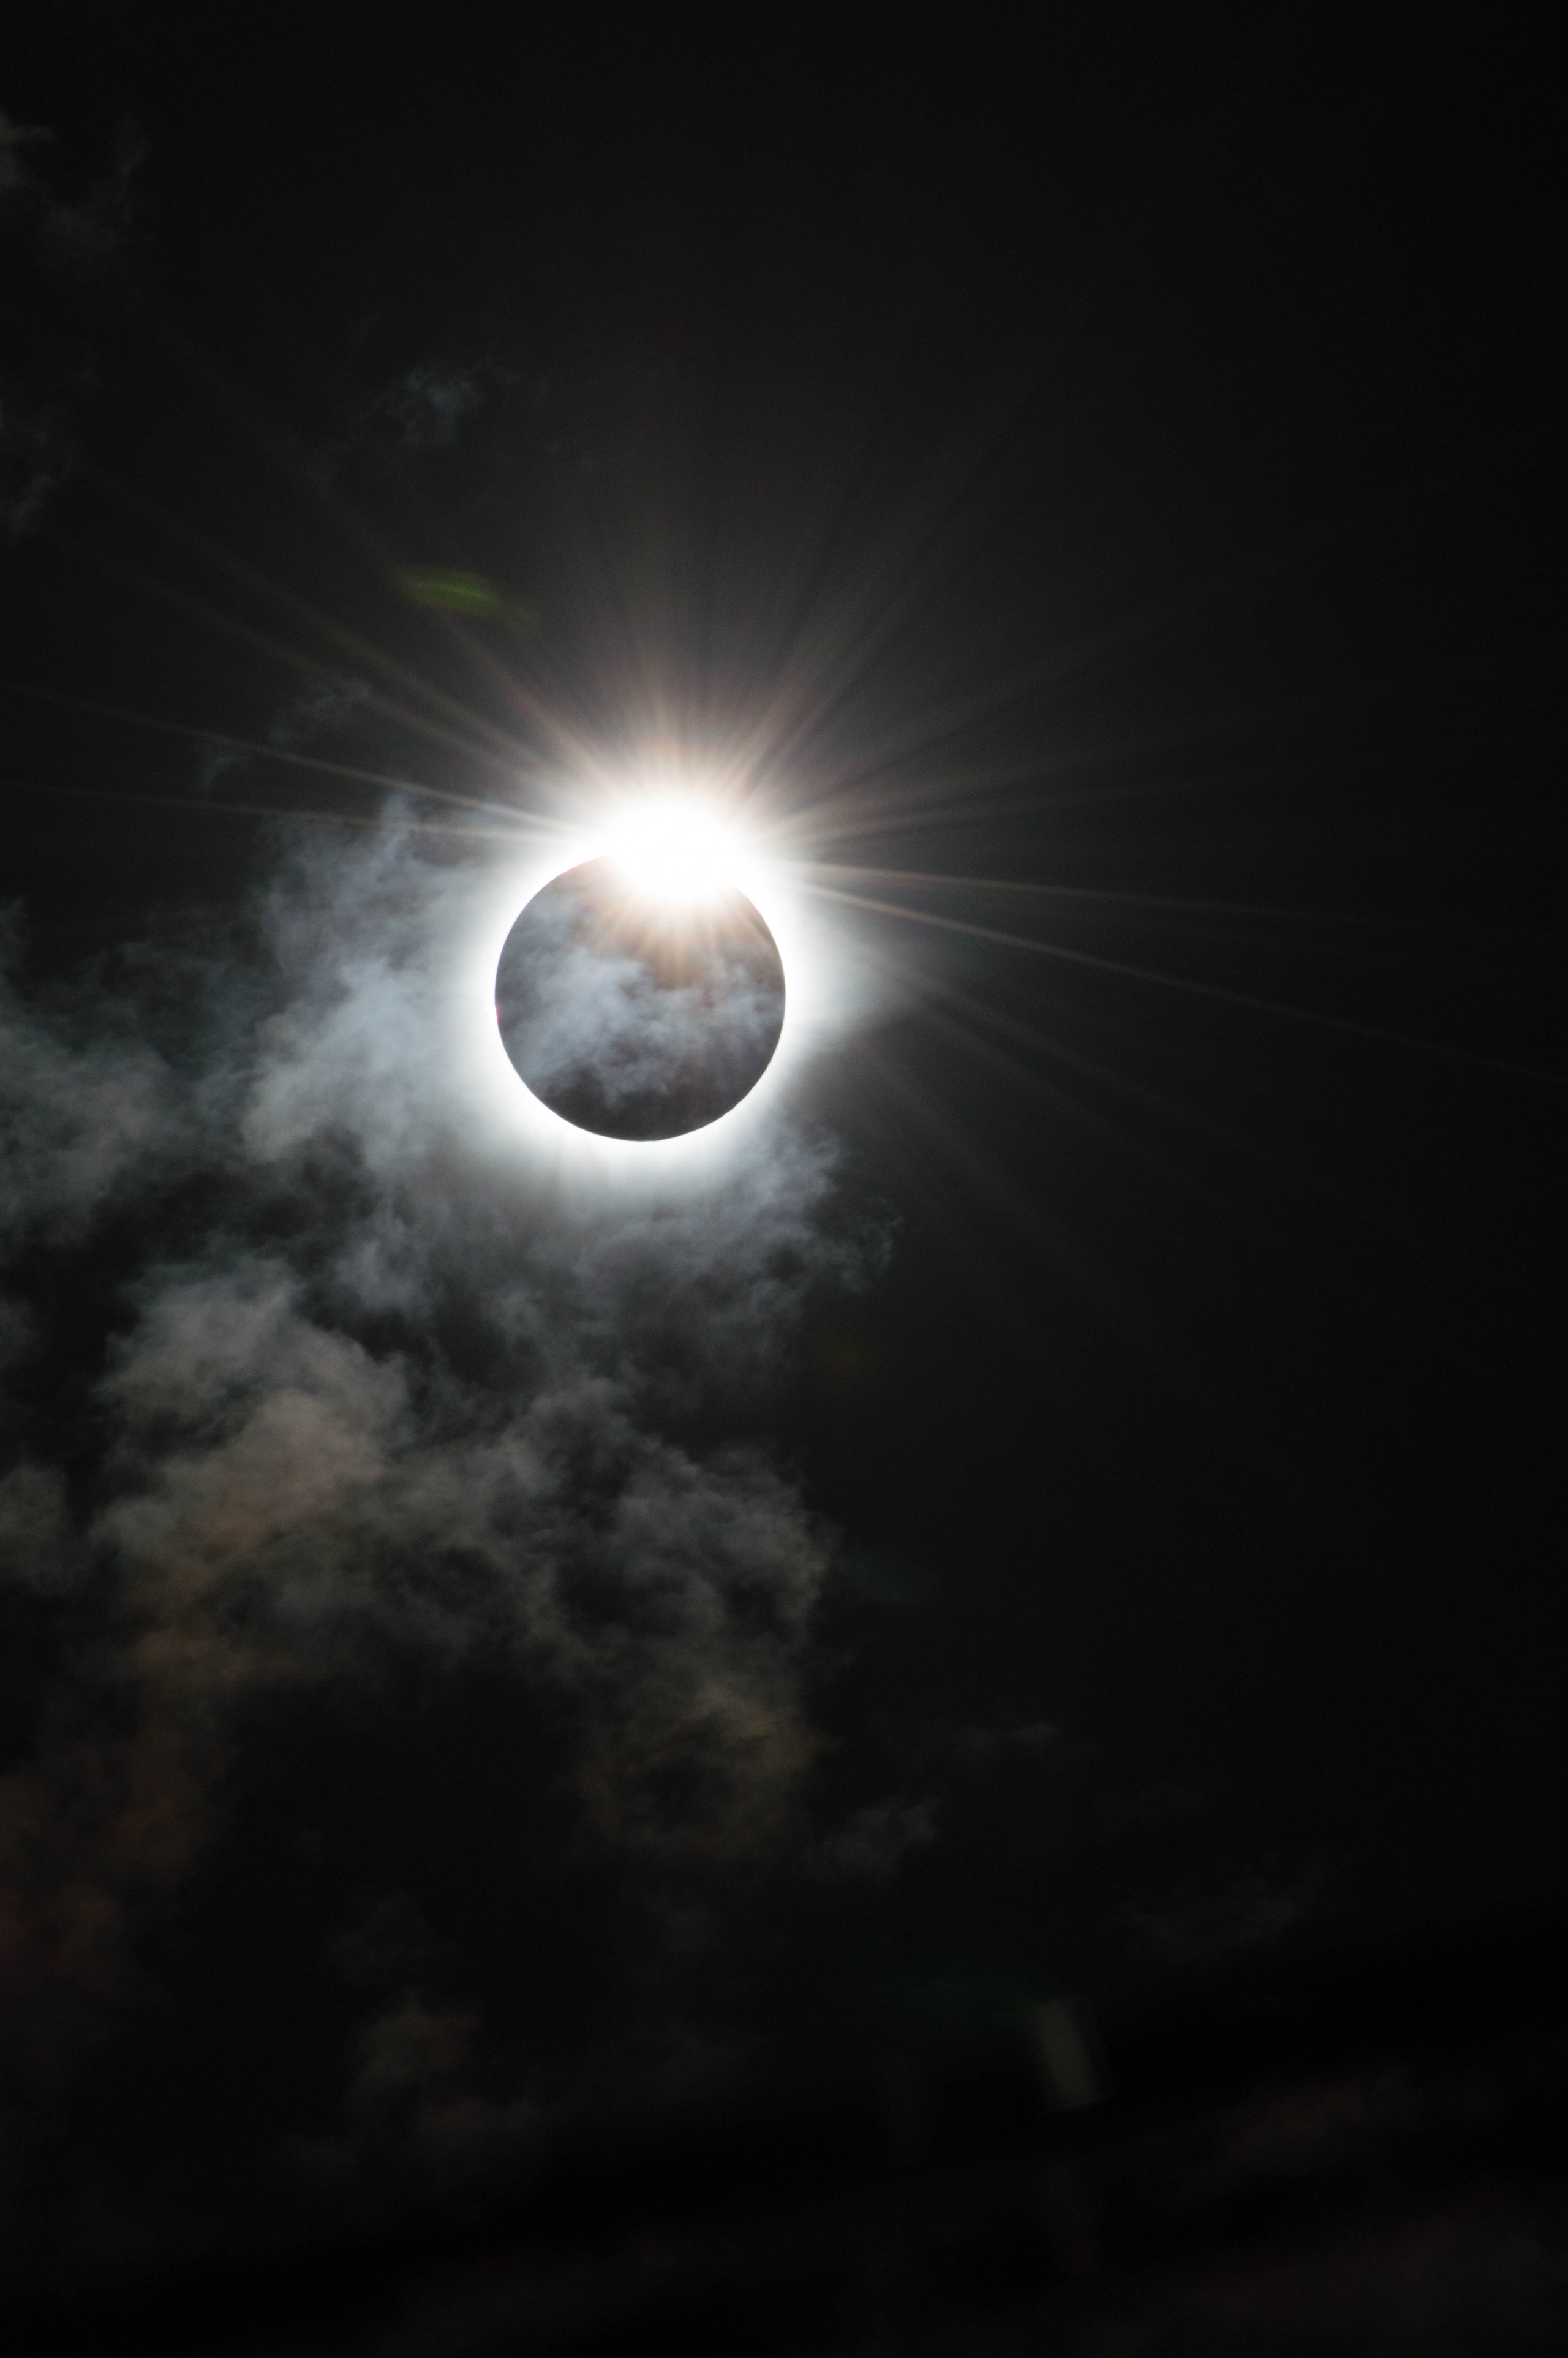 The dramatic moment that our star, the Sun, appears to be cloaked in darkness by the Moon during the total solar eclipse in Indonesia on March 9, 2016.